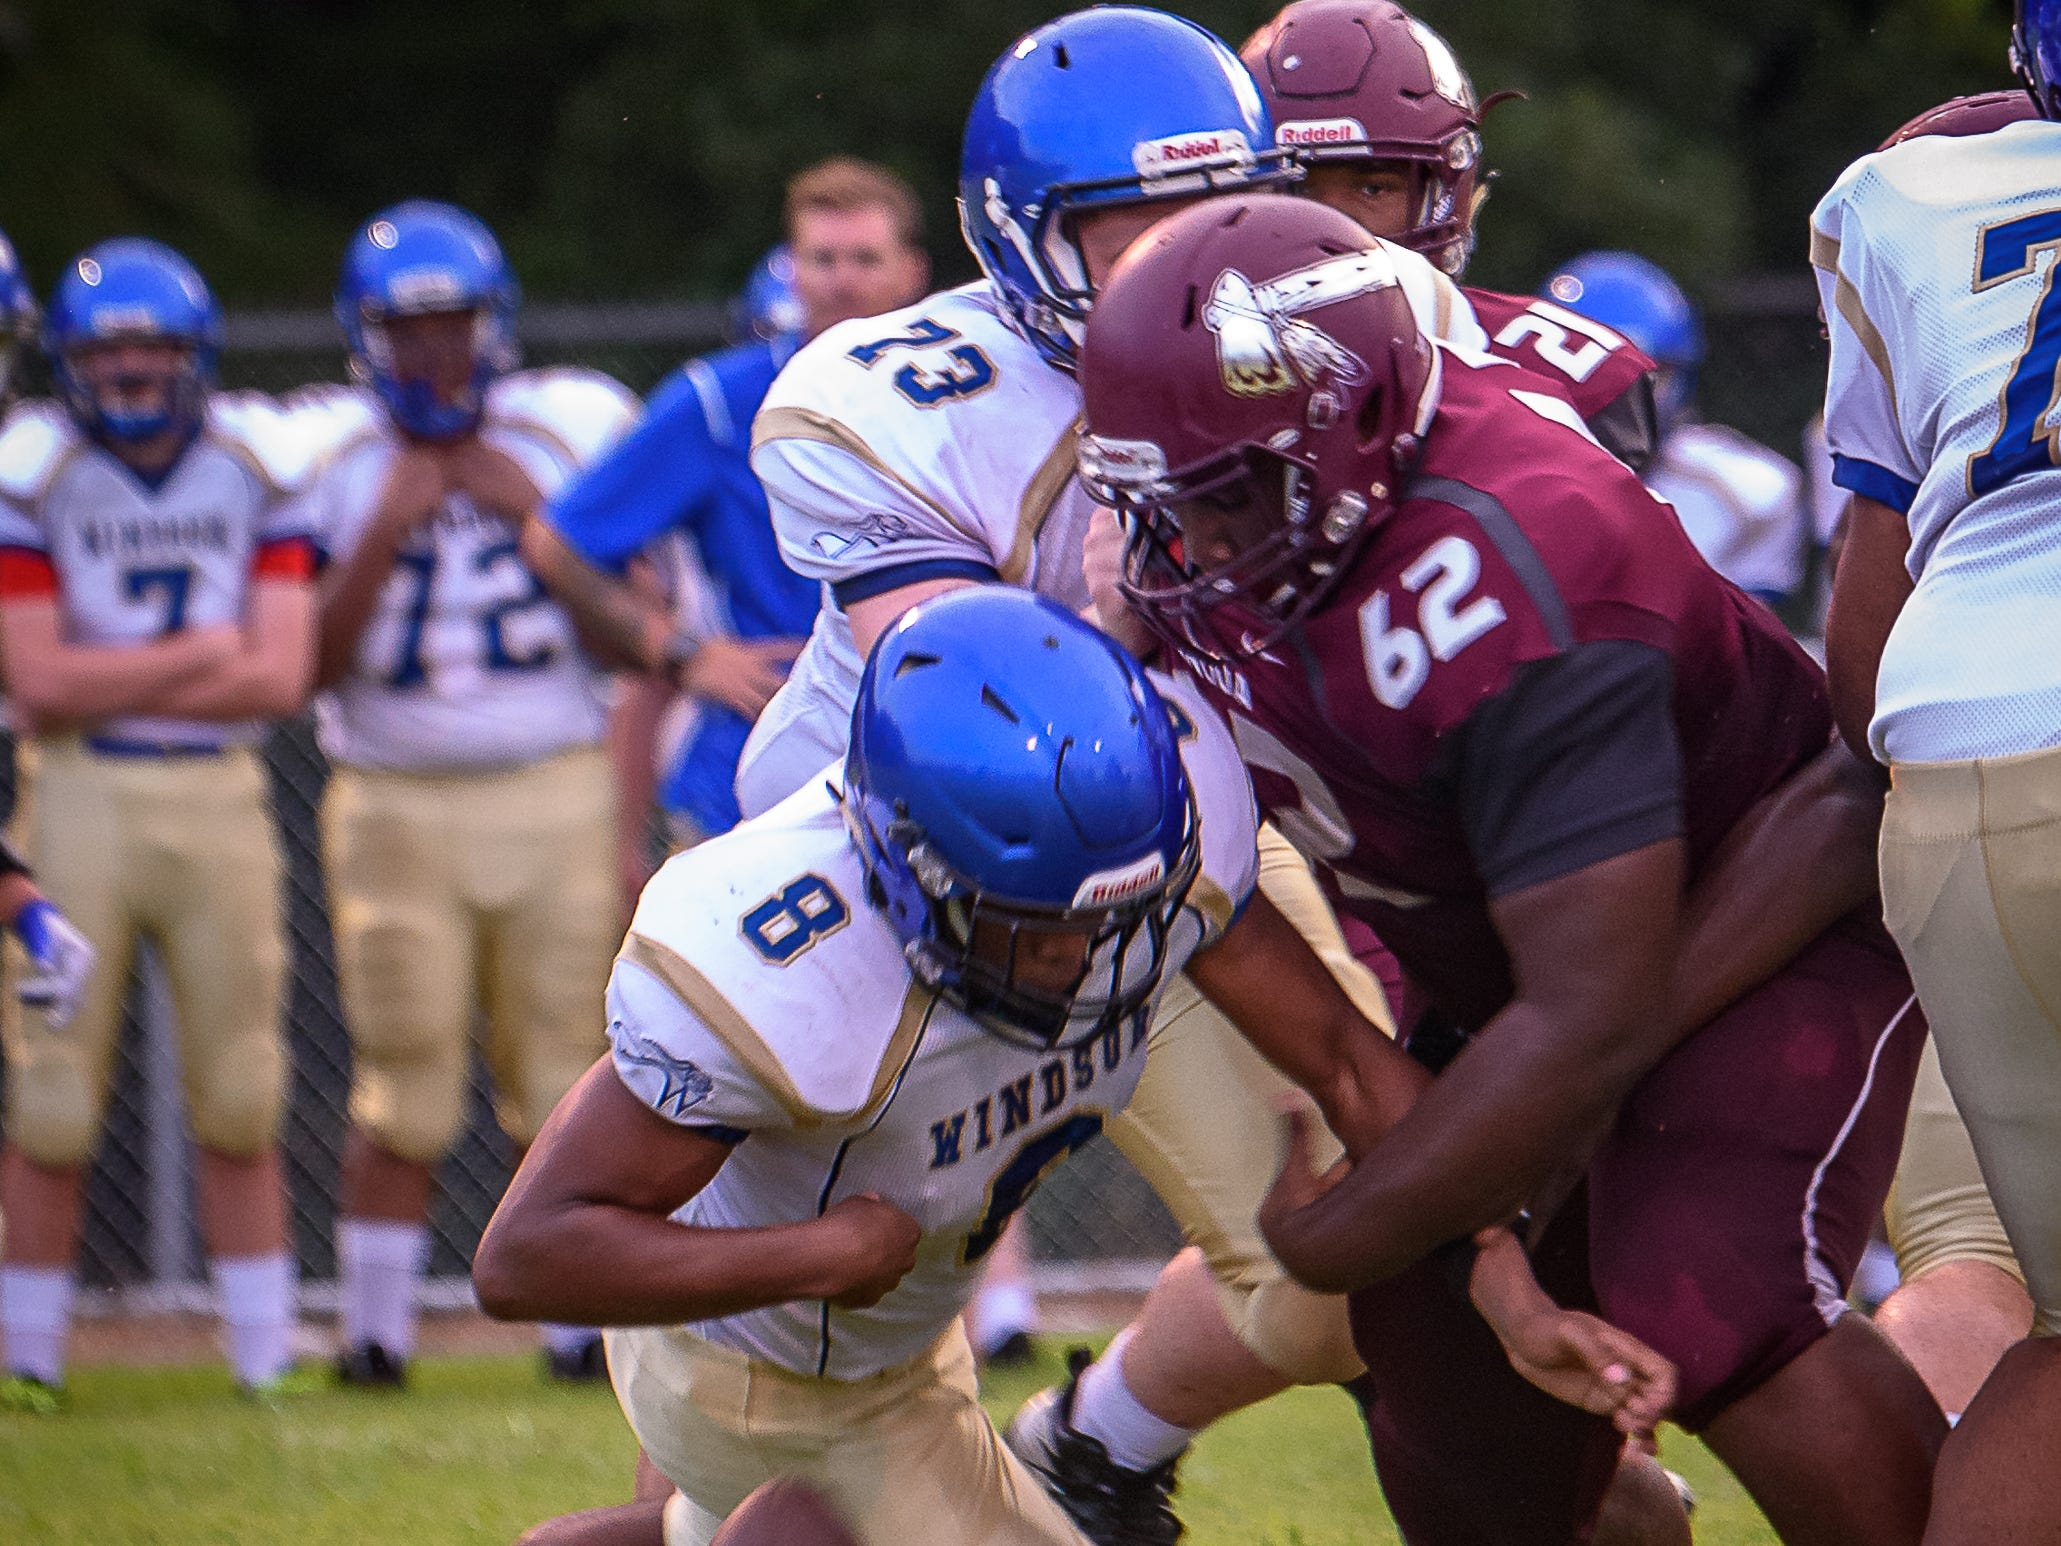 Nandua High School football team traveled to Windsor for its second game of the season. Nandua won the game 50-7. Jaheim Gaskins, No. 62 of Nandua, forces a fumble from Windsor's No. 8 Kip Holloway during their game Aug. 30.